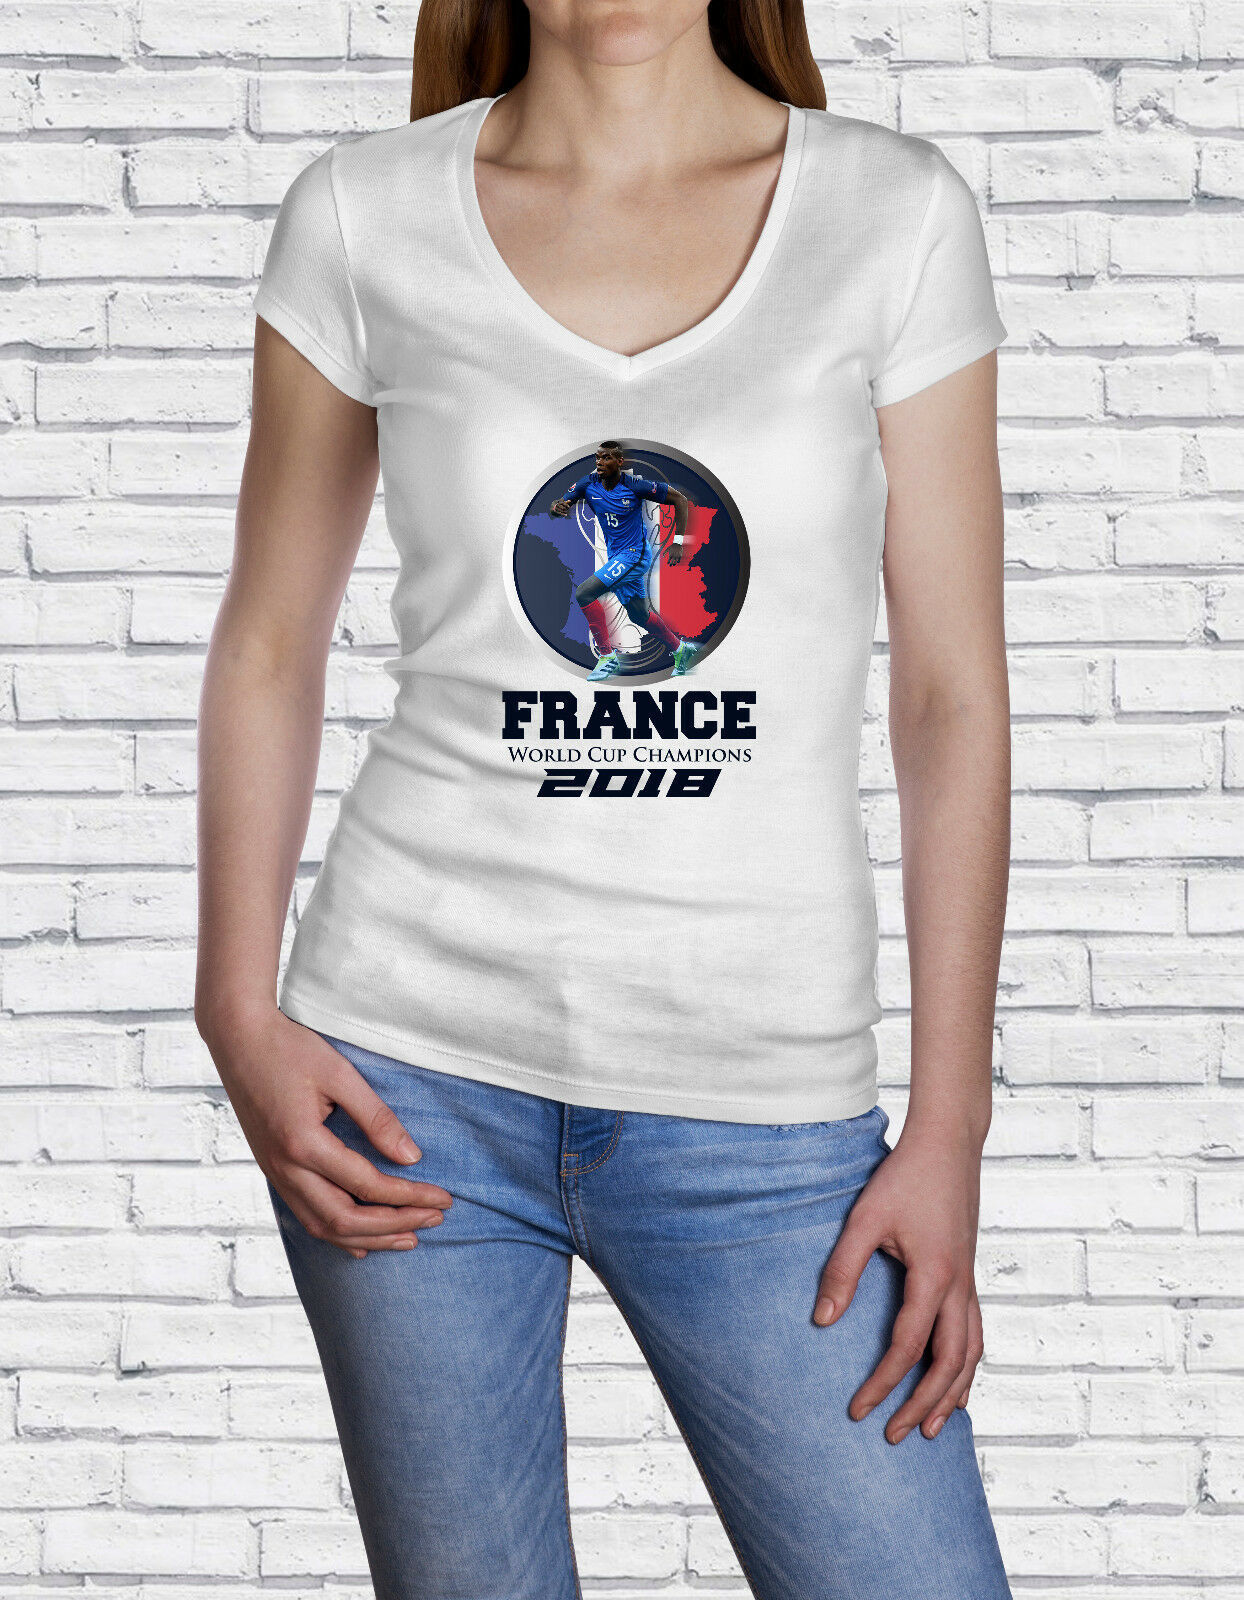 Soccer World Cup, Russia 2018, France Champion Theme, Women's V-Neck T-Shirt